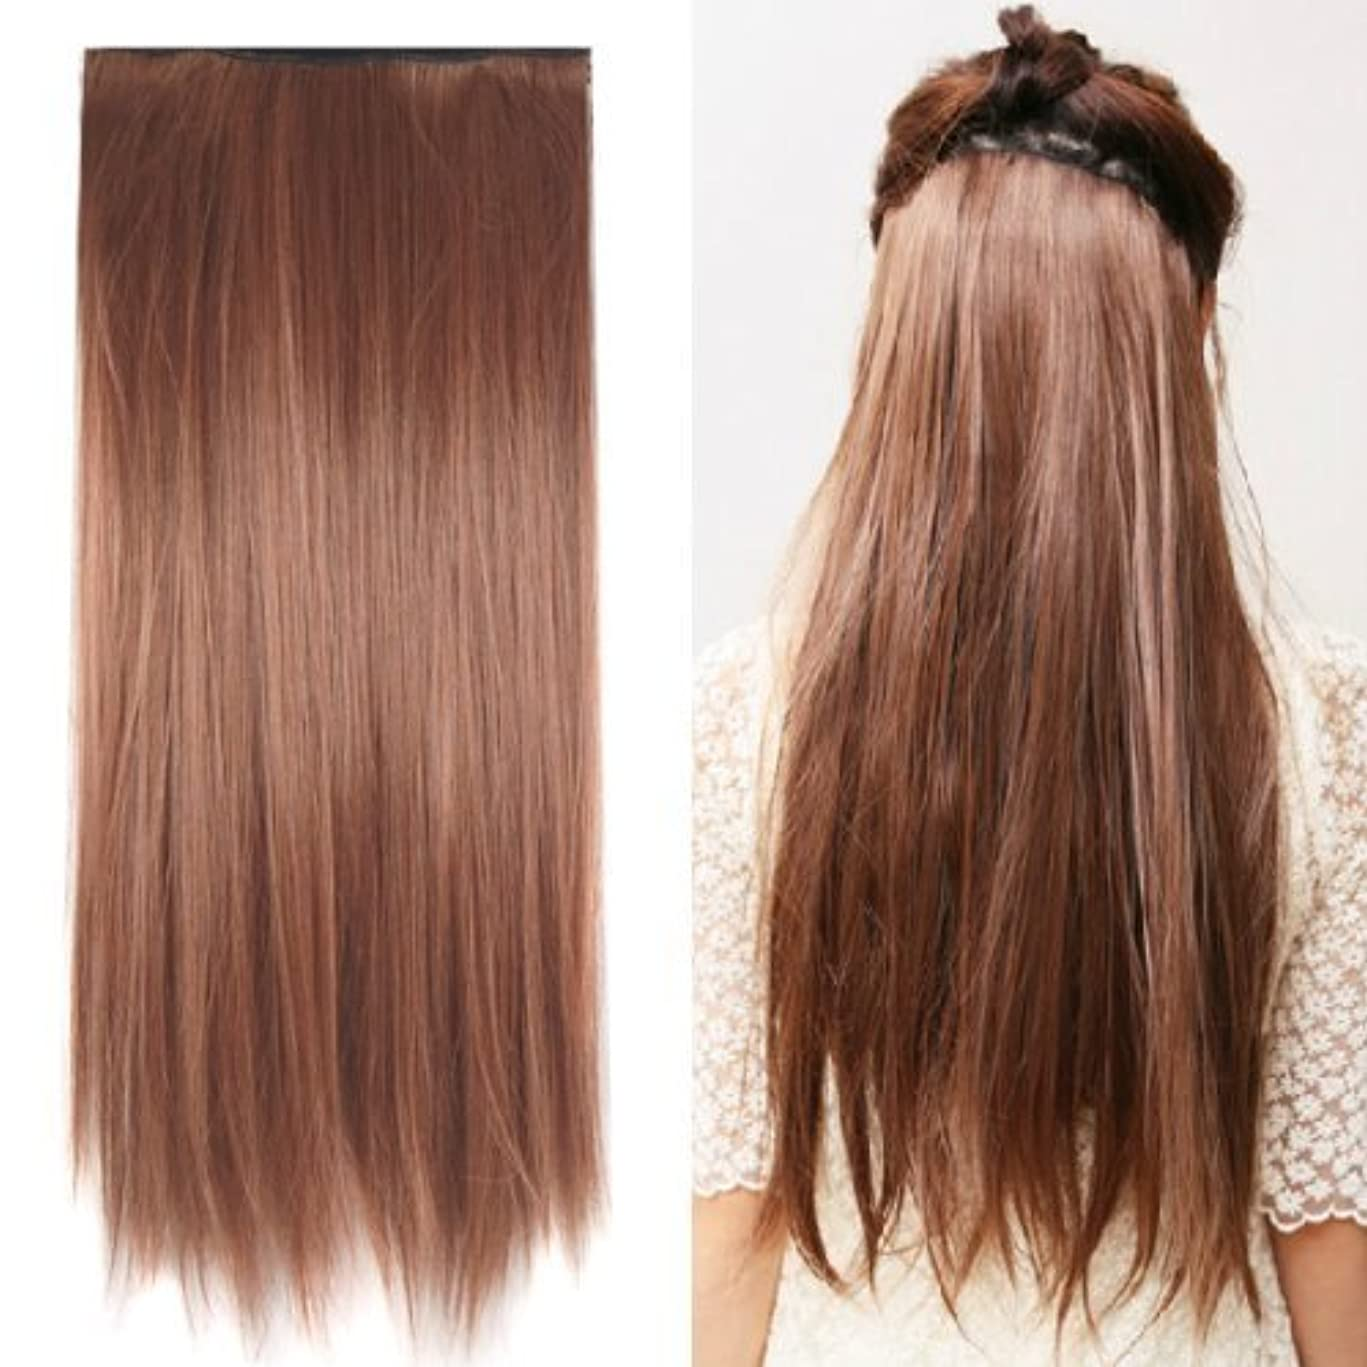 汗ターゲット不測の事態SODIAL(R) Clip in on hair Straight Tail extensions New human heat resistant fibe - Blonde